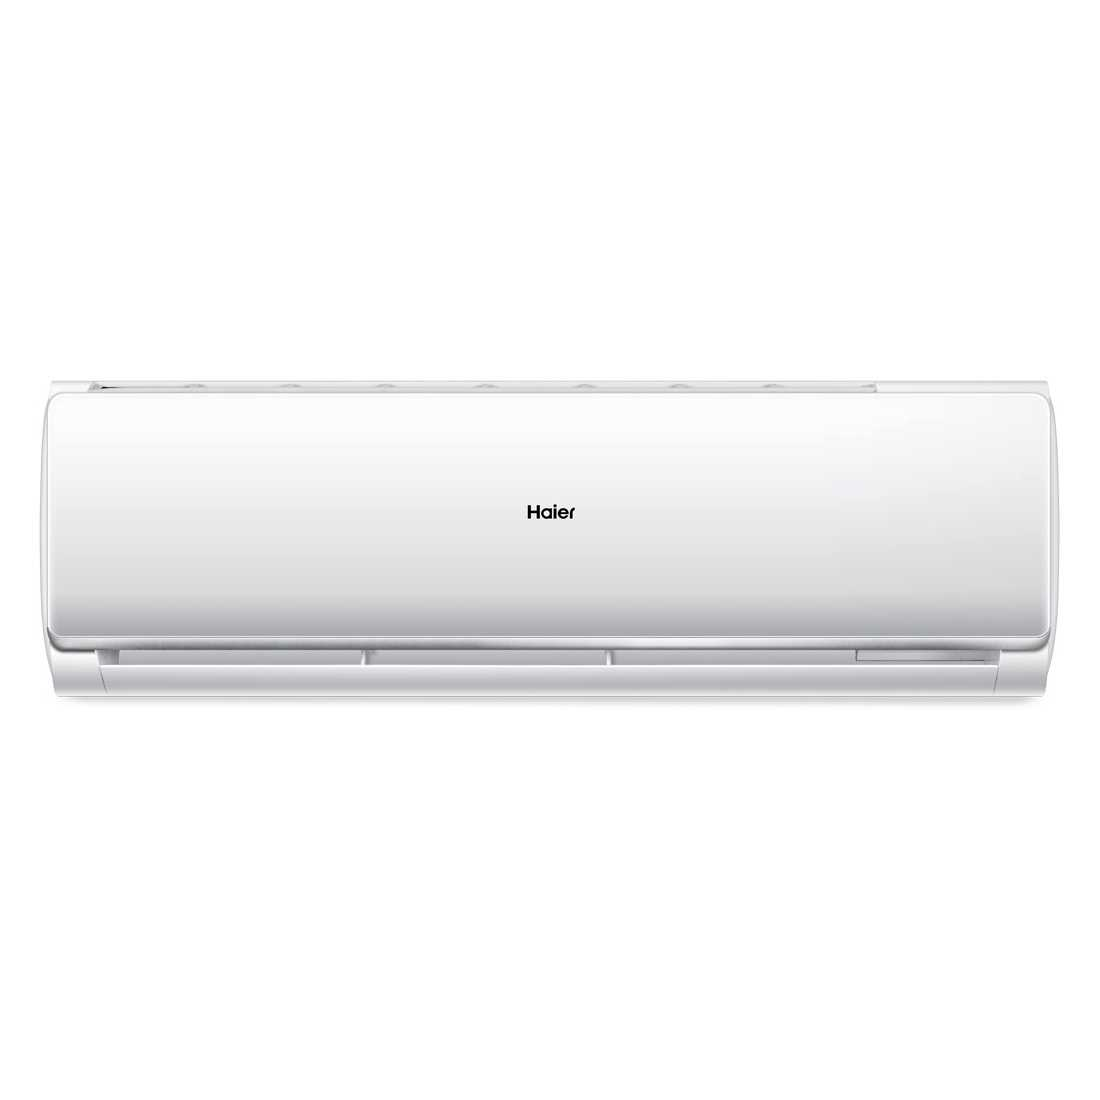 Haier HSU19TCS2CN 1.5 Ton 2 Star BEE Rating 2018 Split AC